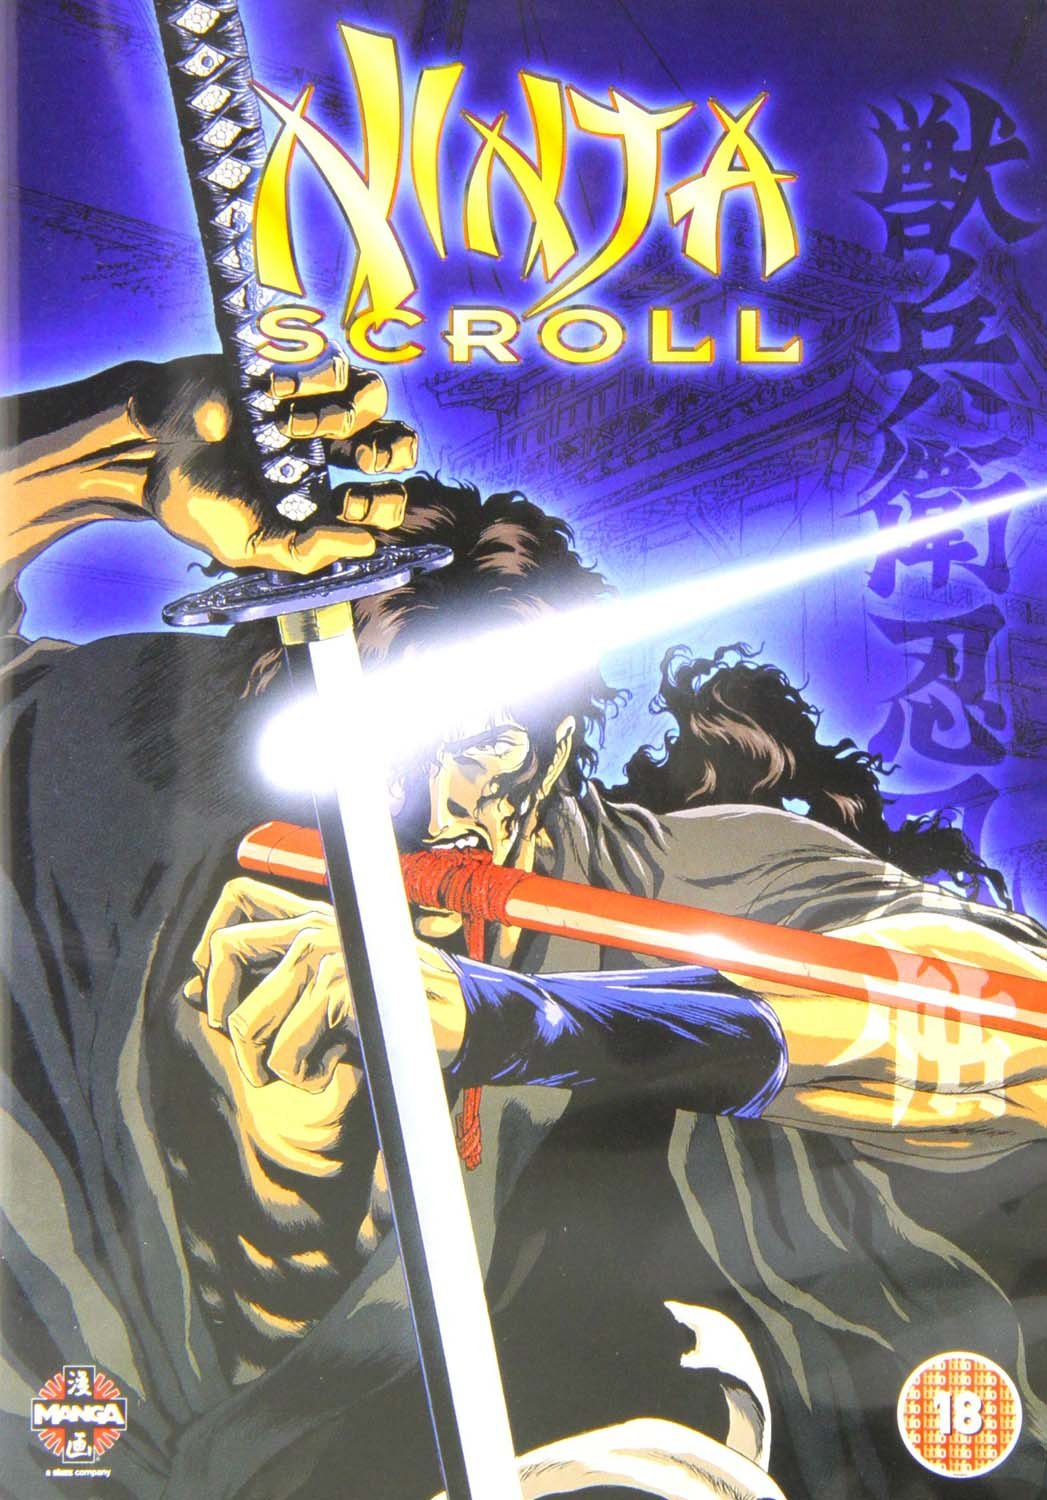 Amazon.com: Ninja Scroll [DVD]: Movies & TV